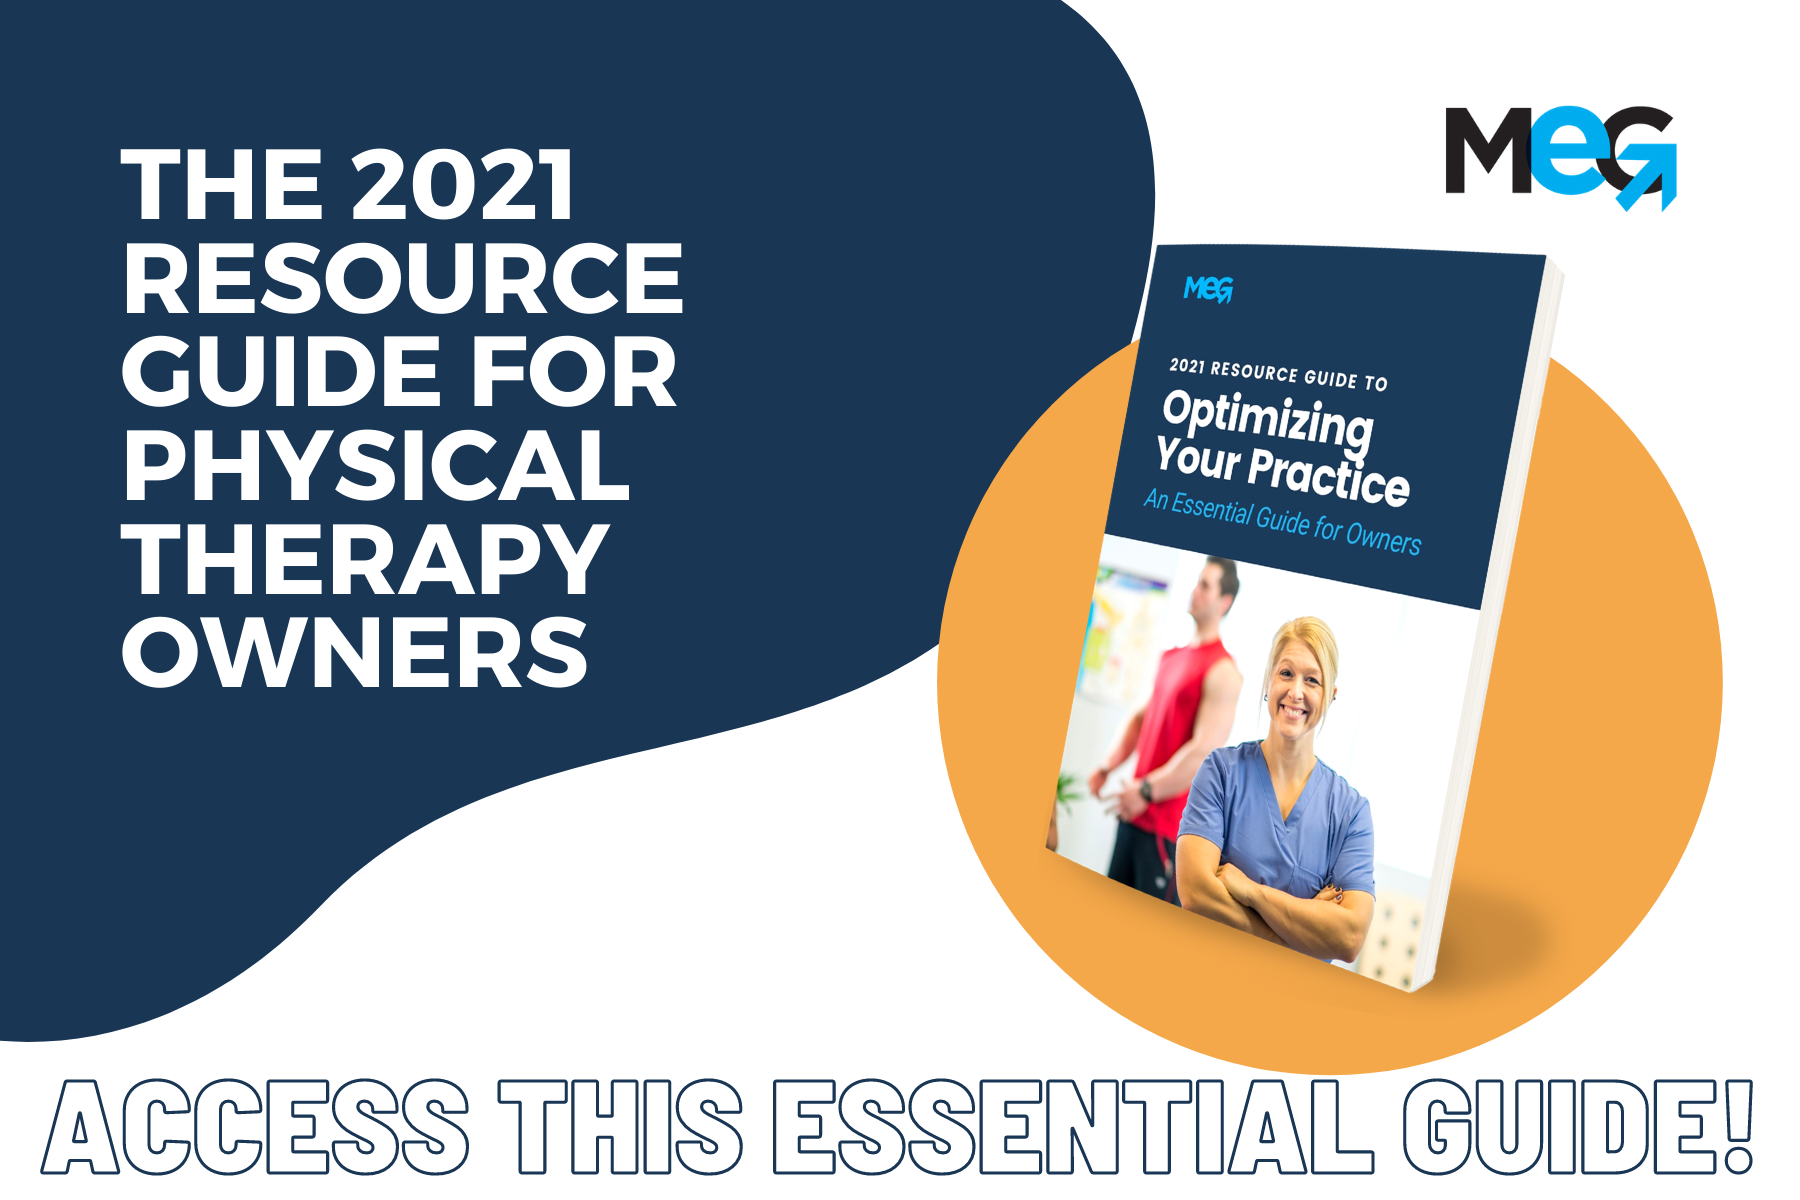 2021 Resource Guide - Physical Therapy